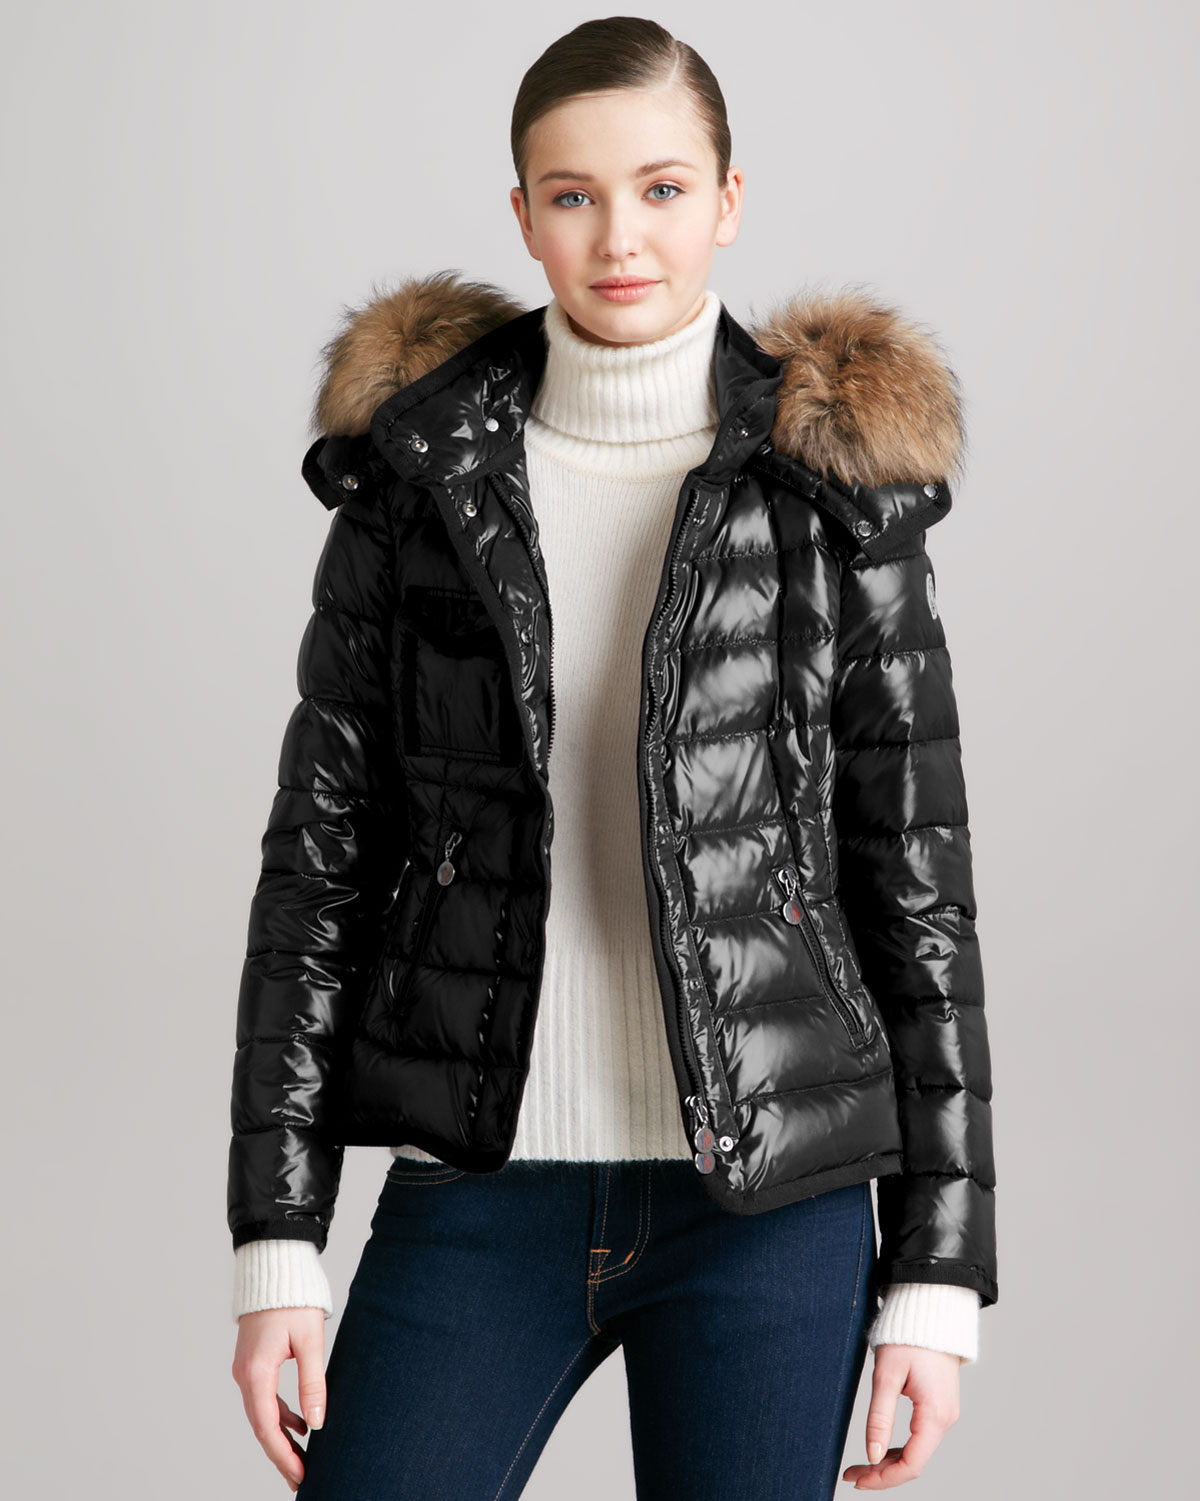 Moncler Short Puffer Jacket with Furtrimmed Hood in Black | Lyst